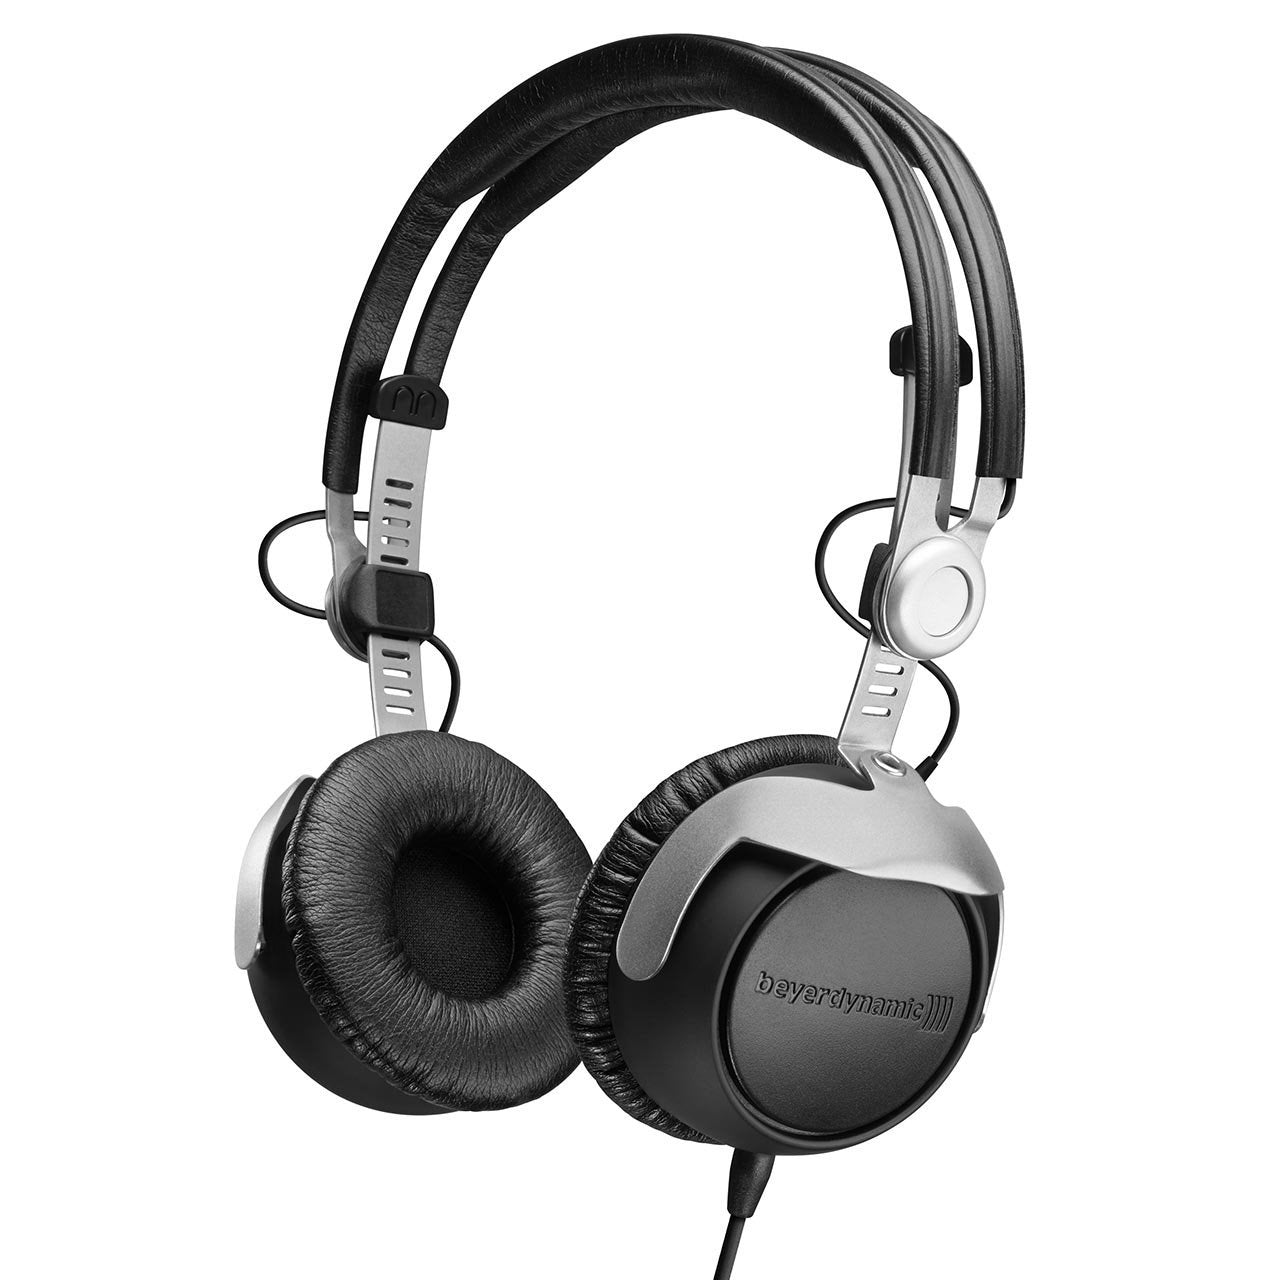 Closed Headphones - Beyerdynamic DT 1350 Closed DJ Headphones